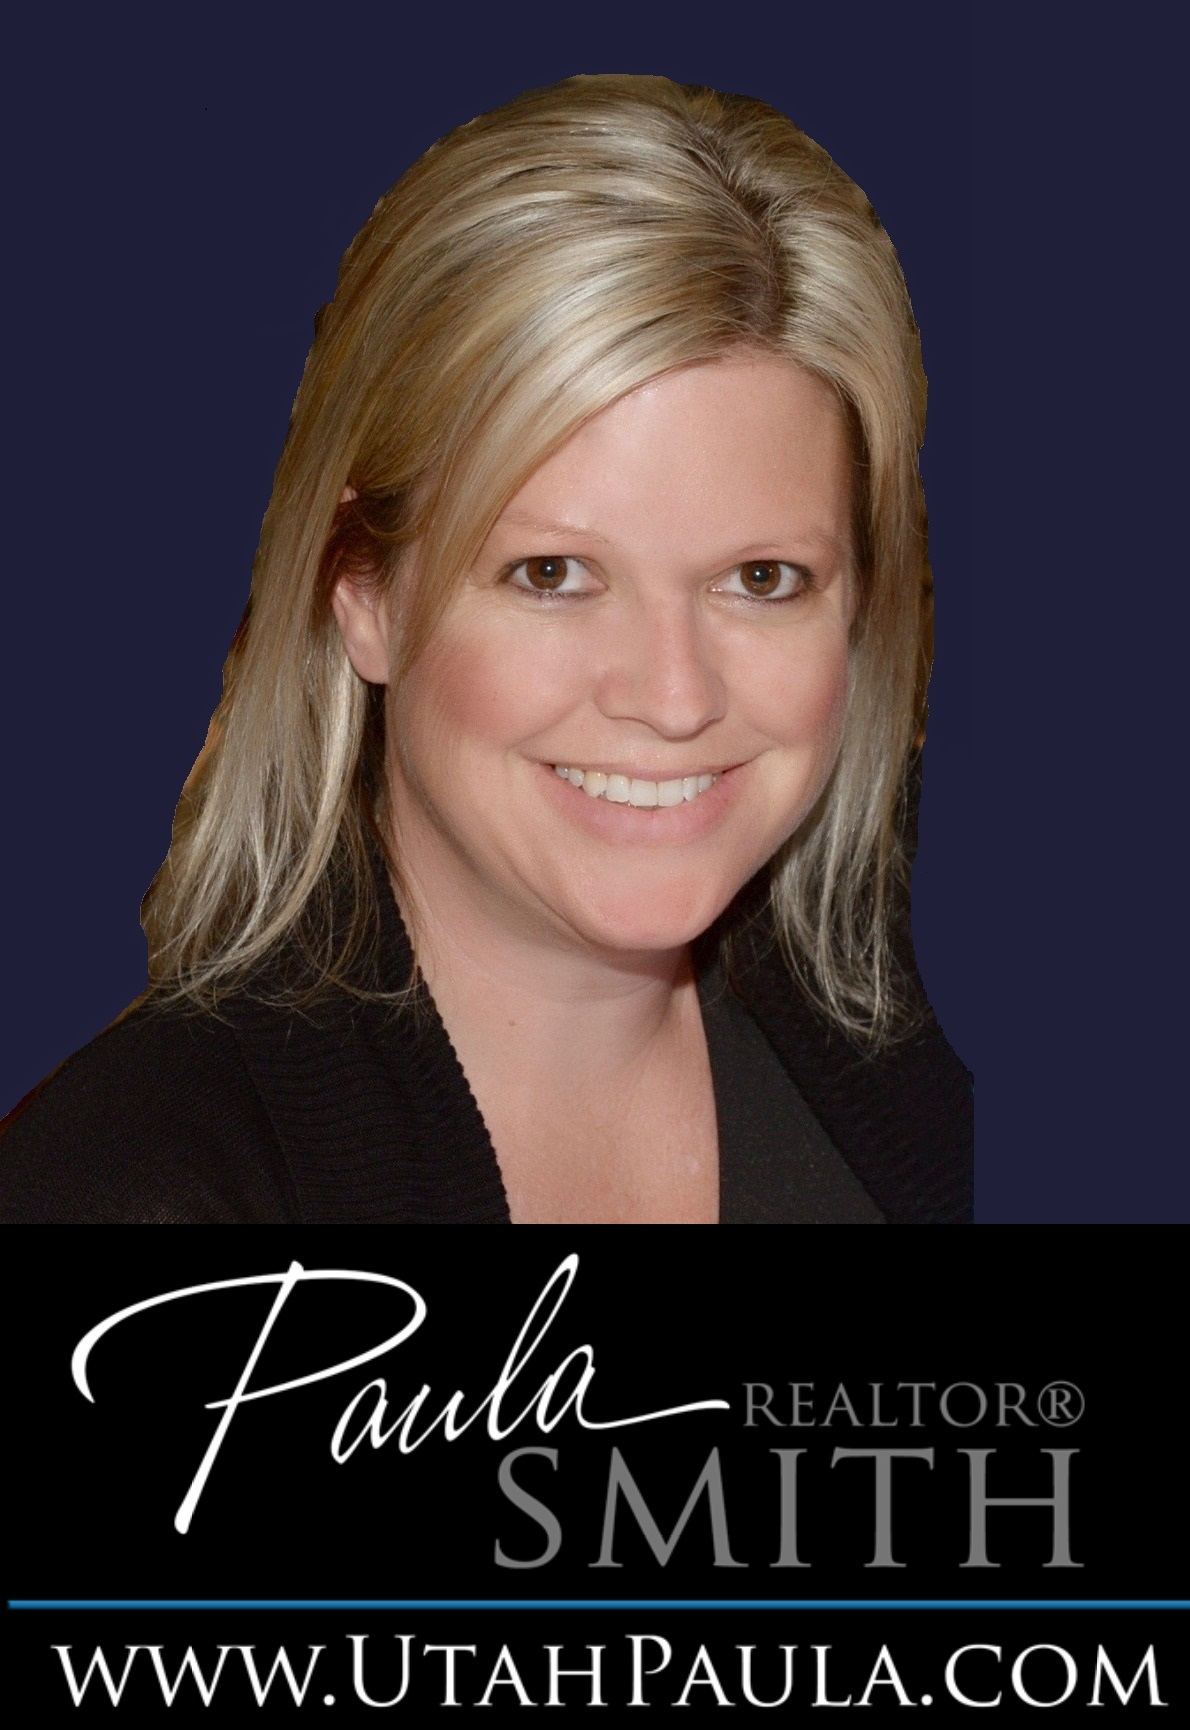 Paula Smith RealtyPath St George Realtor